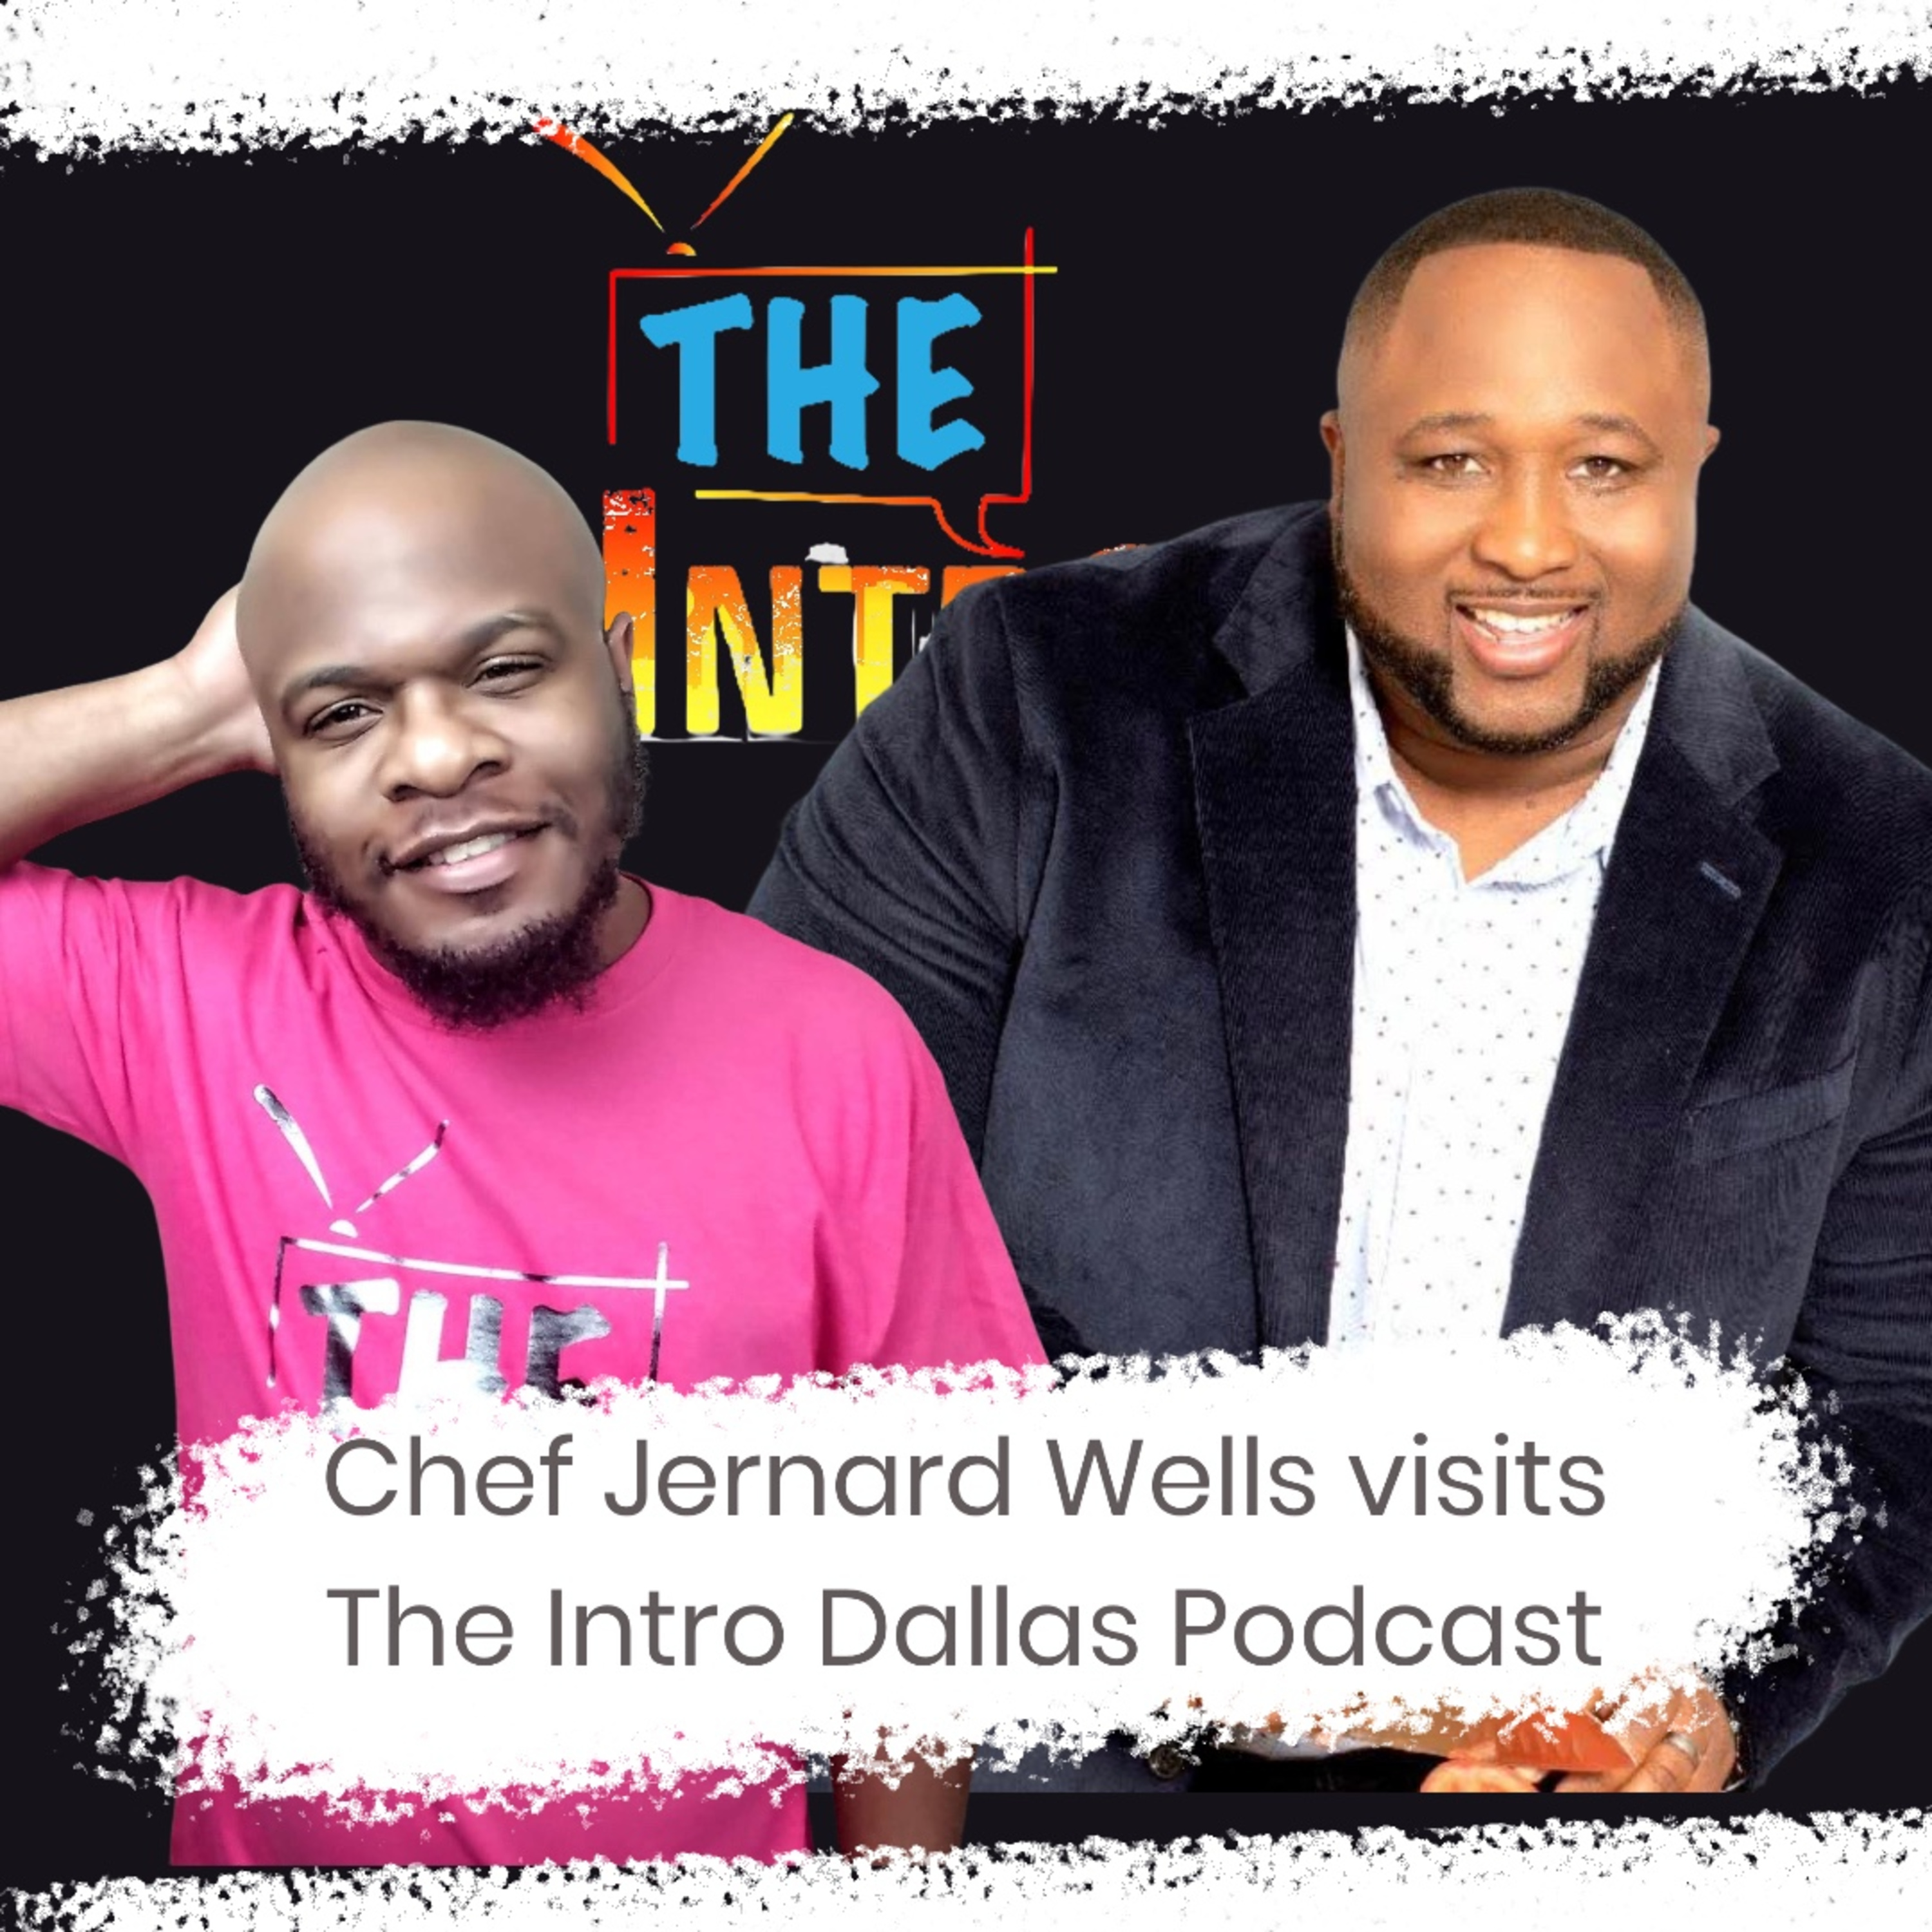 S2 Ep 1 Chef Jernard Wells visits The Intro Dallas Podcast